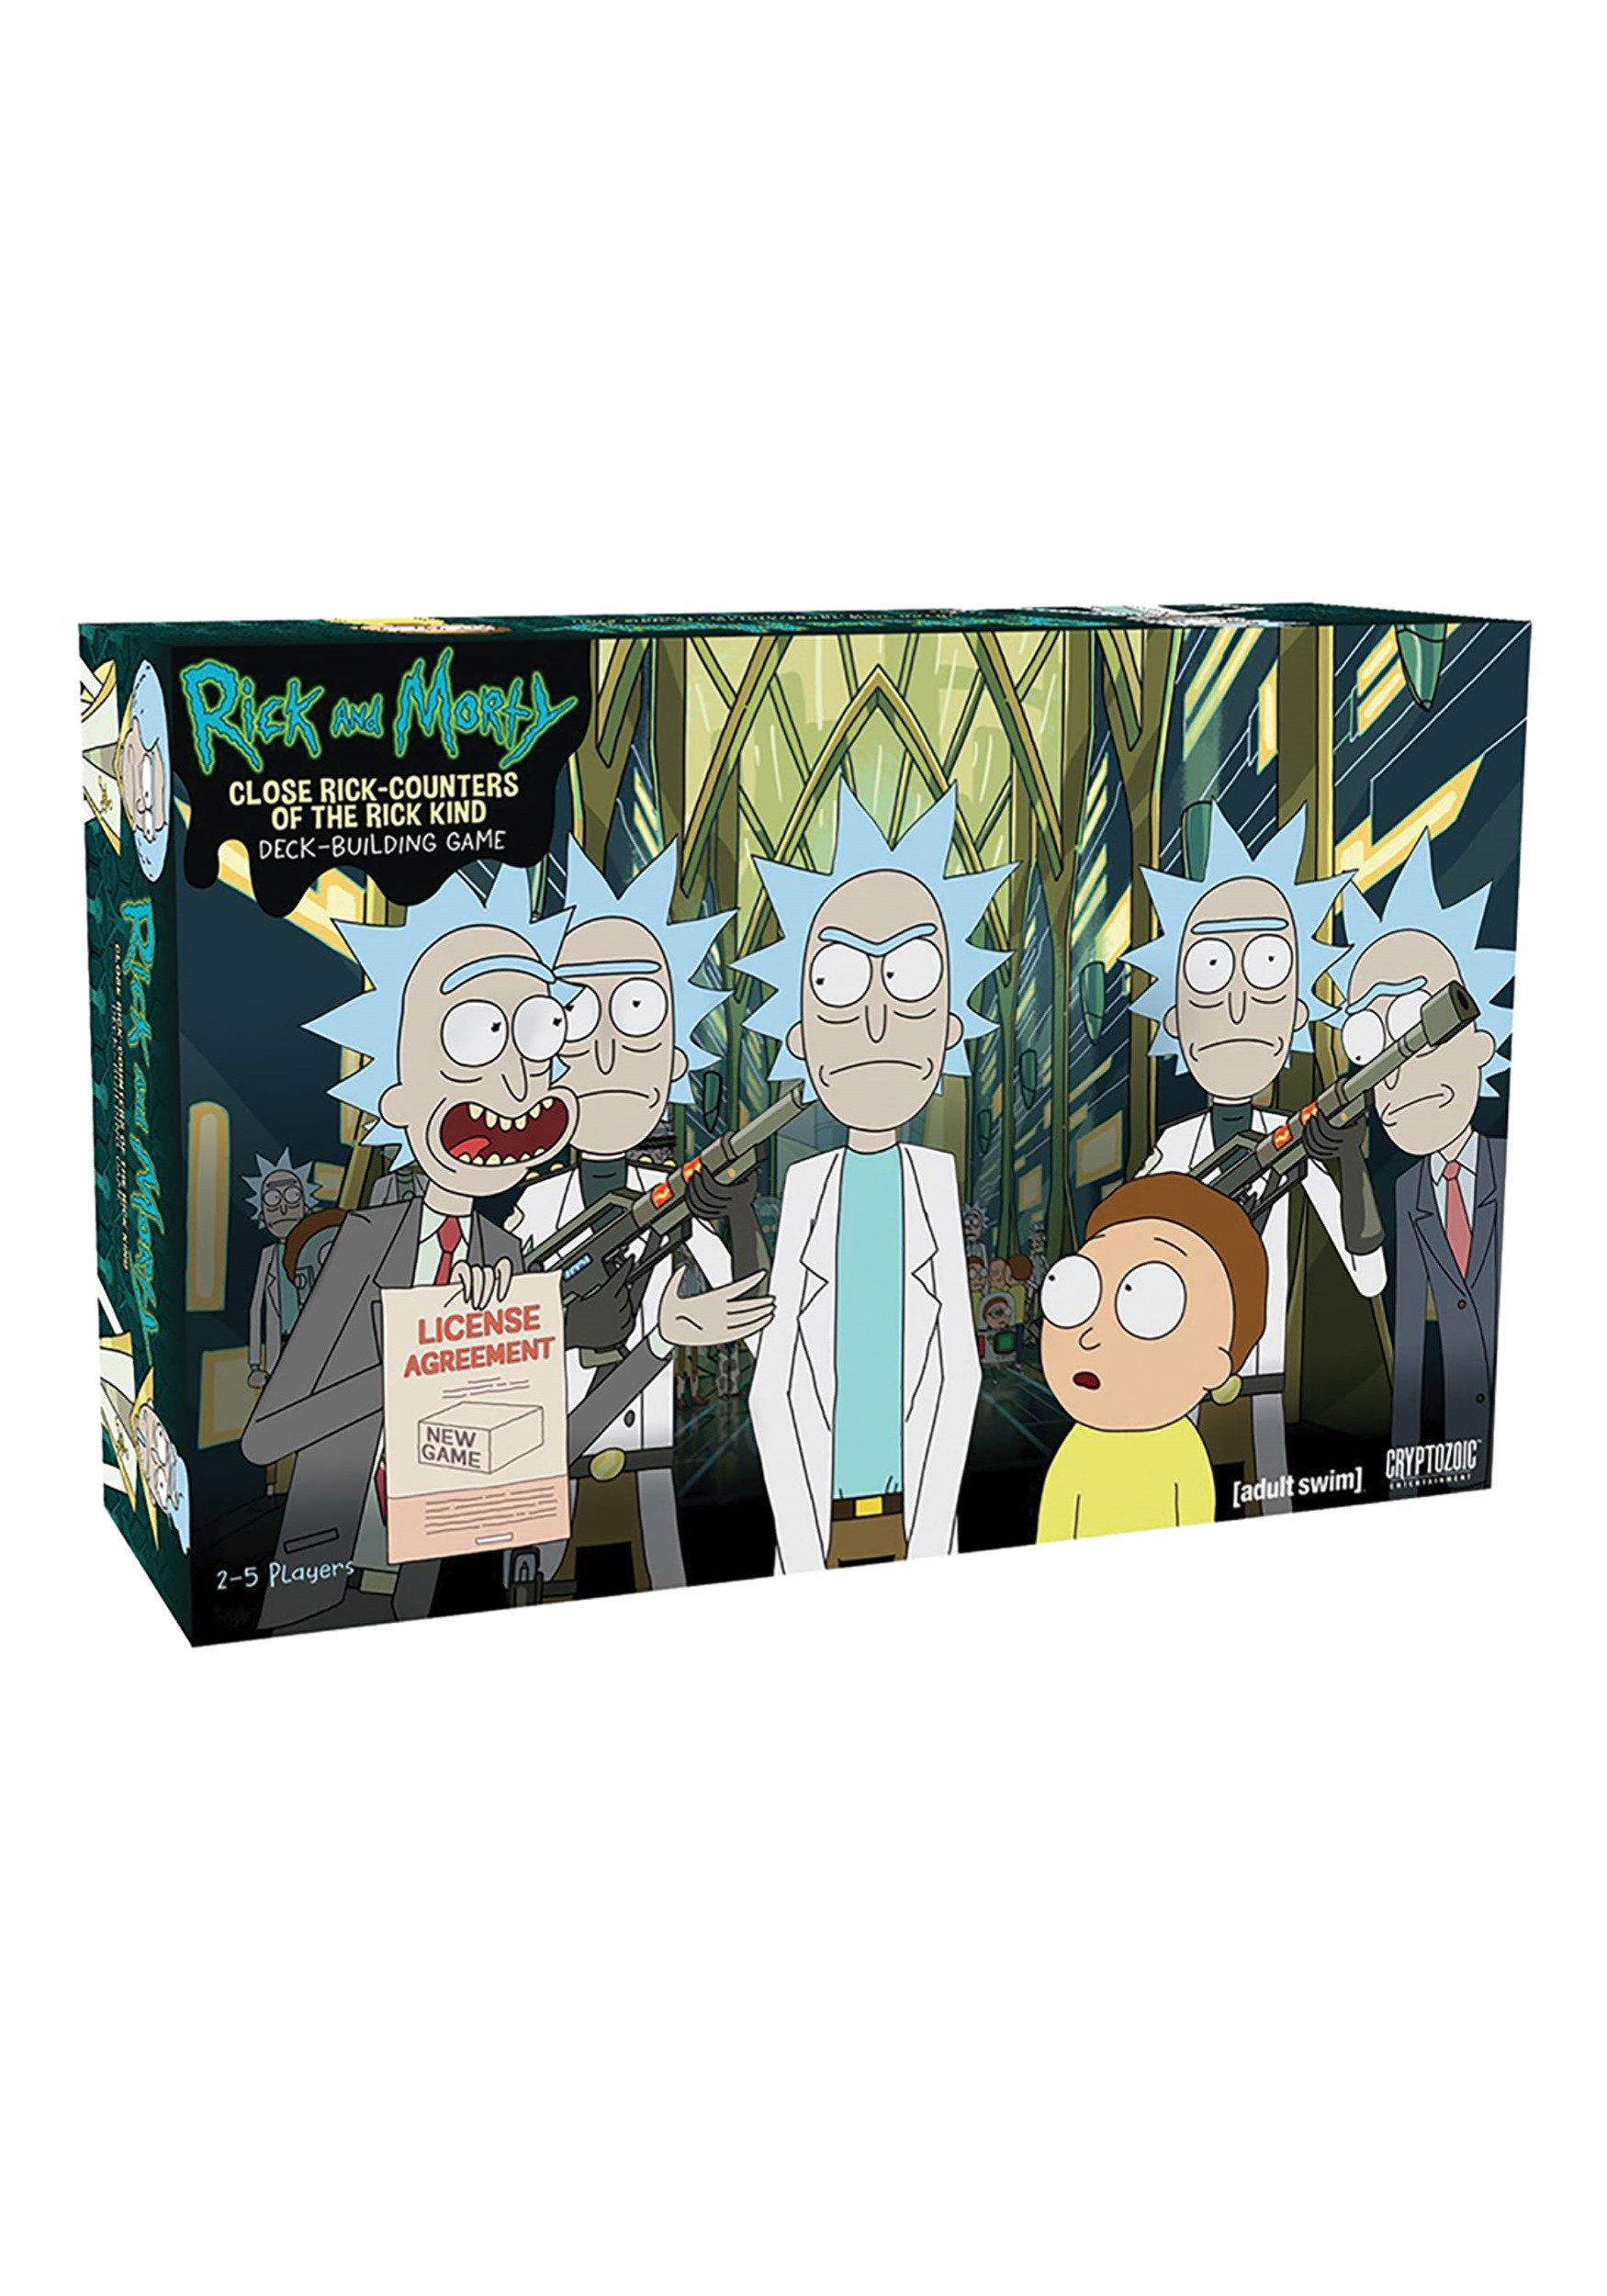 Close Rick-Counters Rick and Morty Deck Building Game